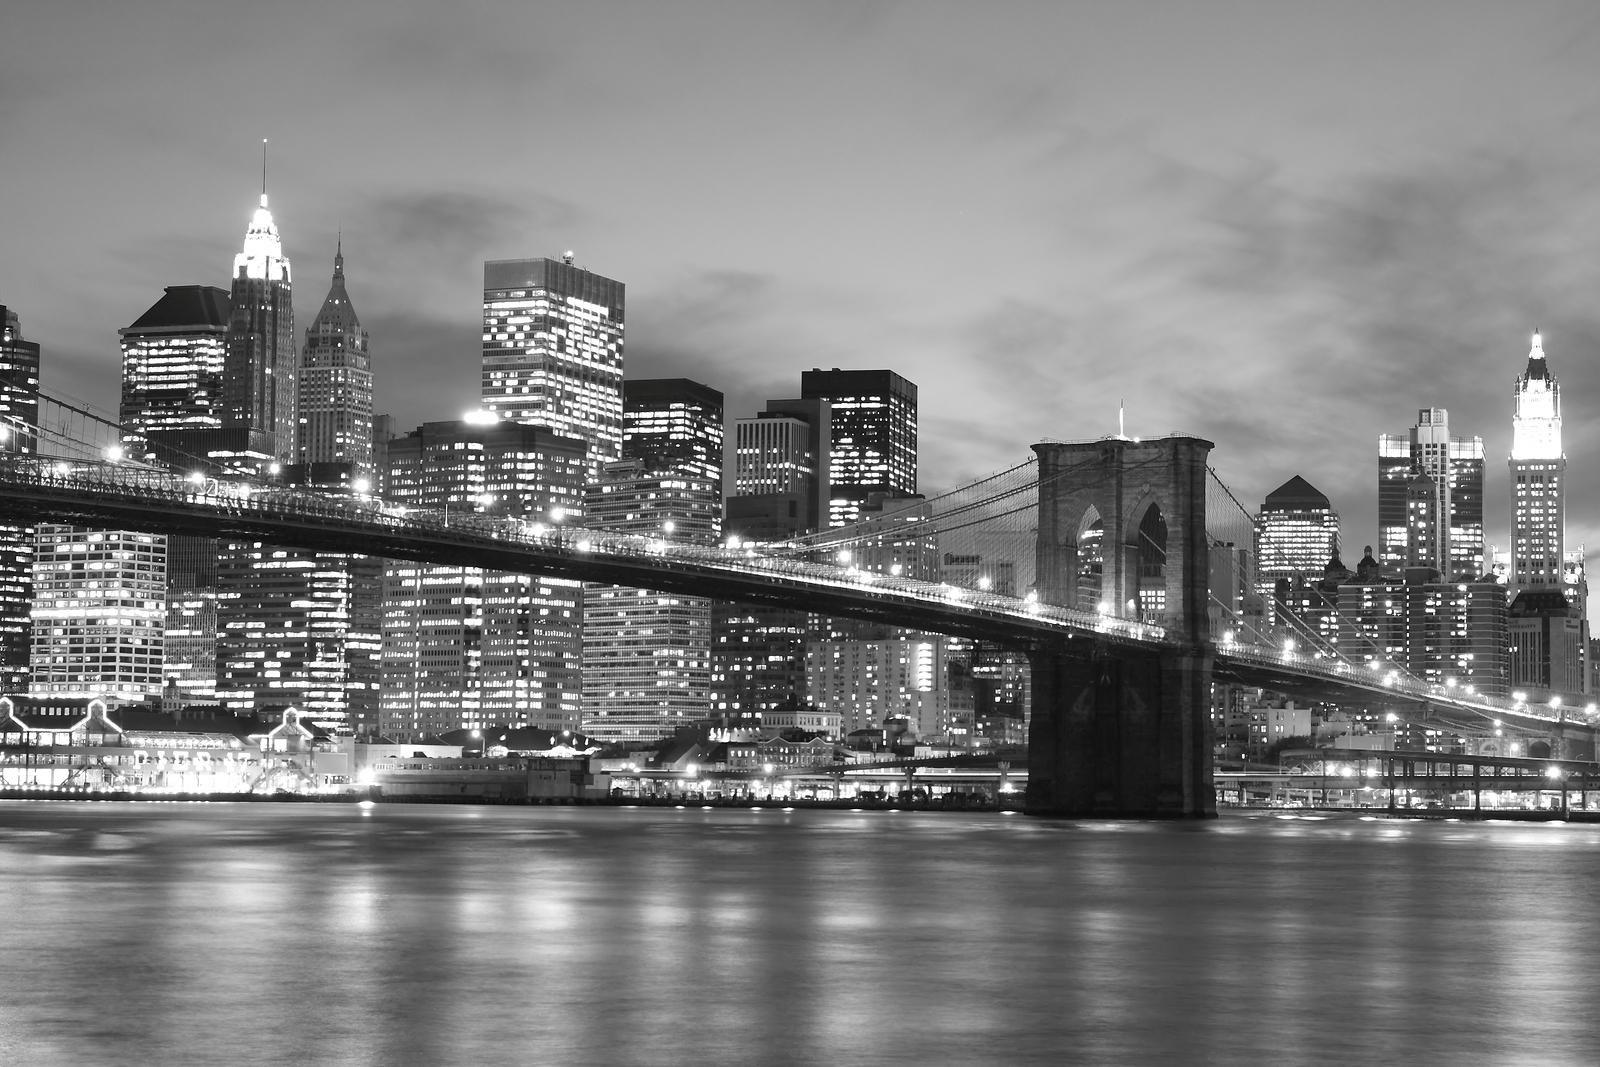 Custom Wall Murals | Wall Stickers, Removable Wallpaper Within Brooklyn Bridge Wall Decals (Image 7 of 20)